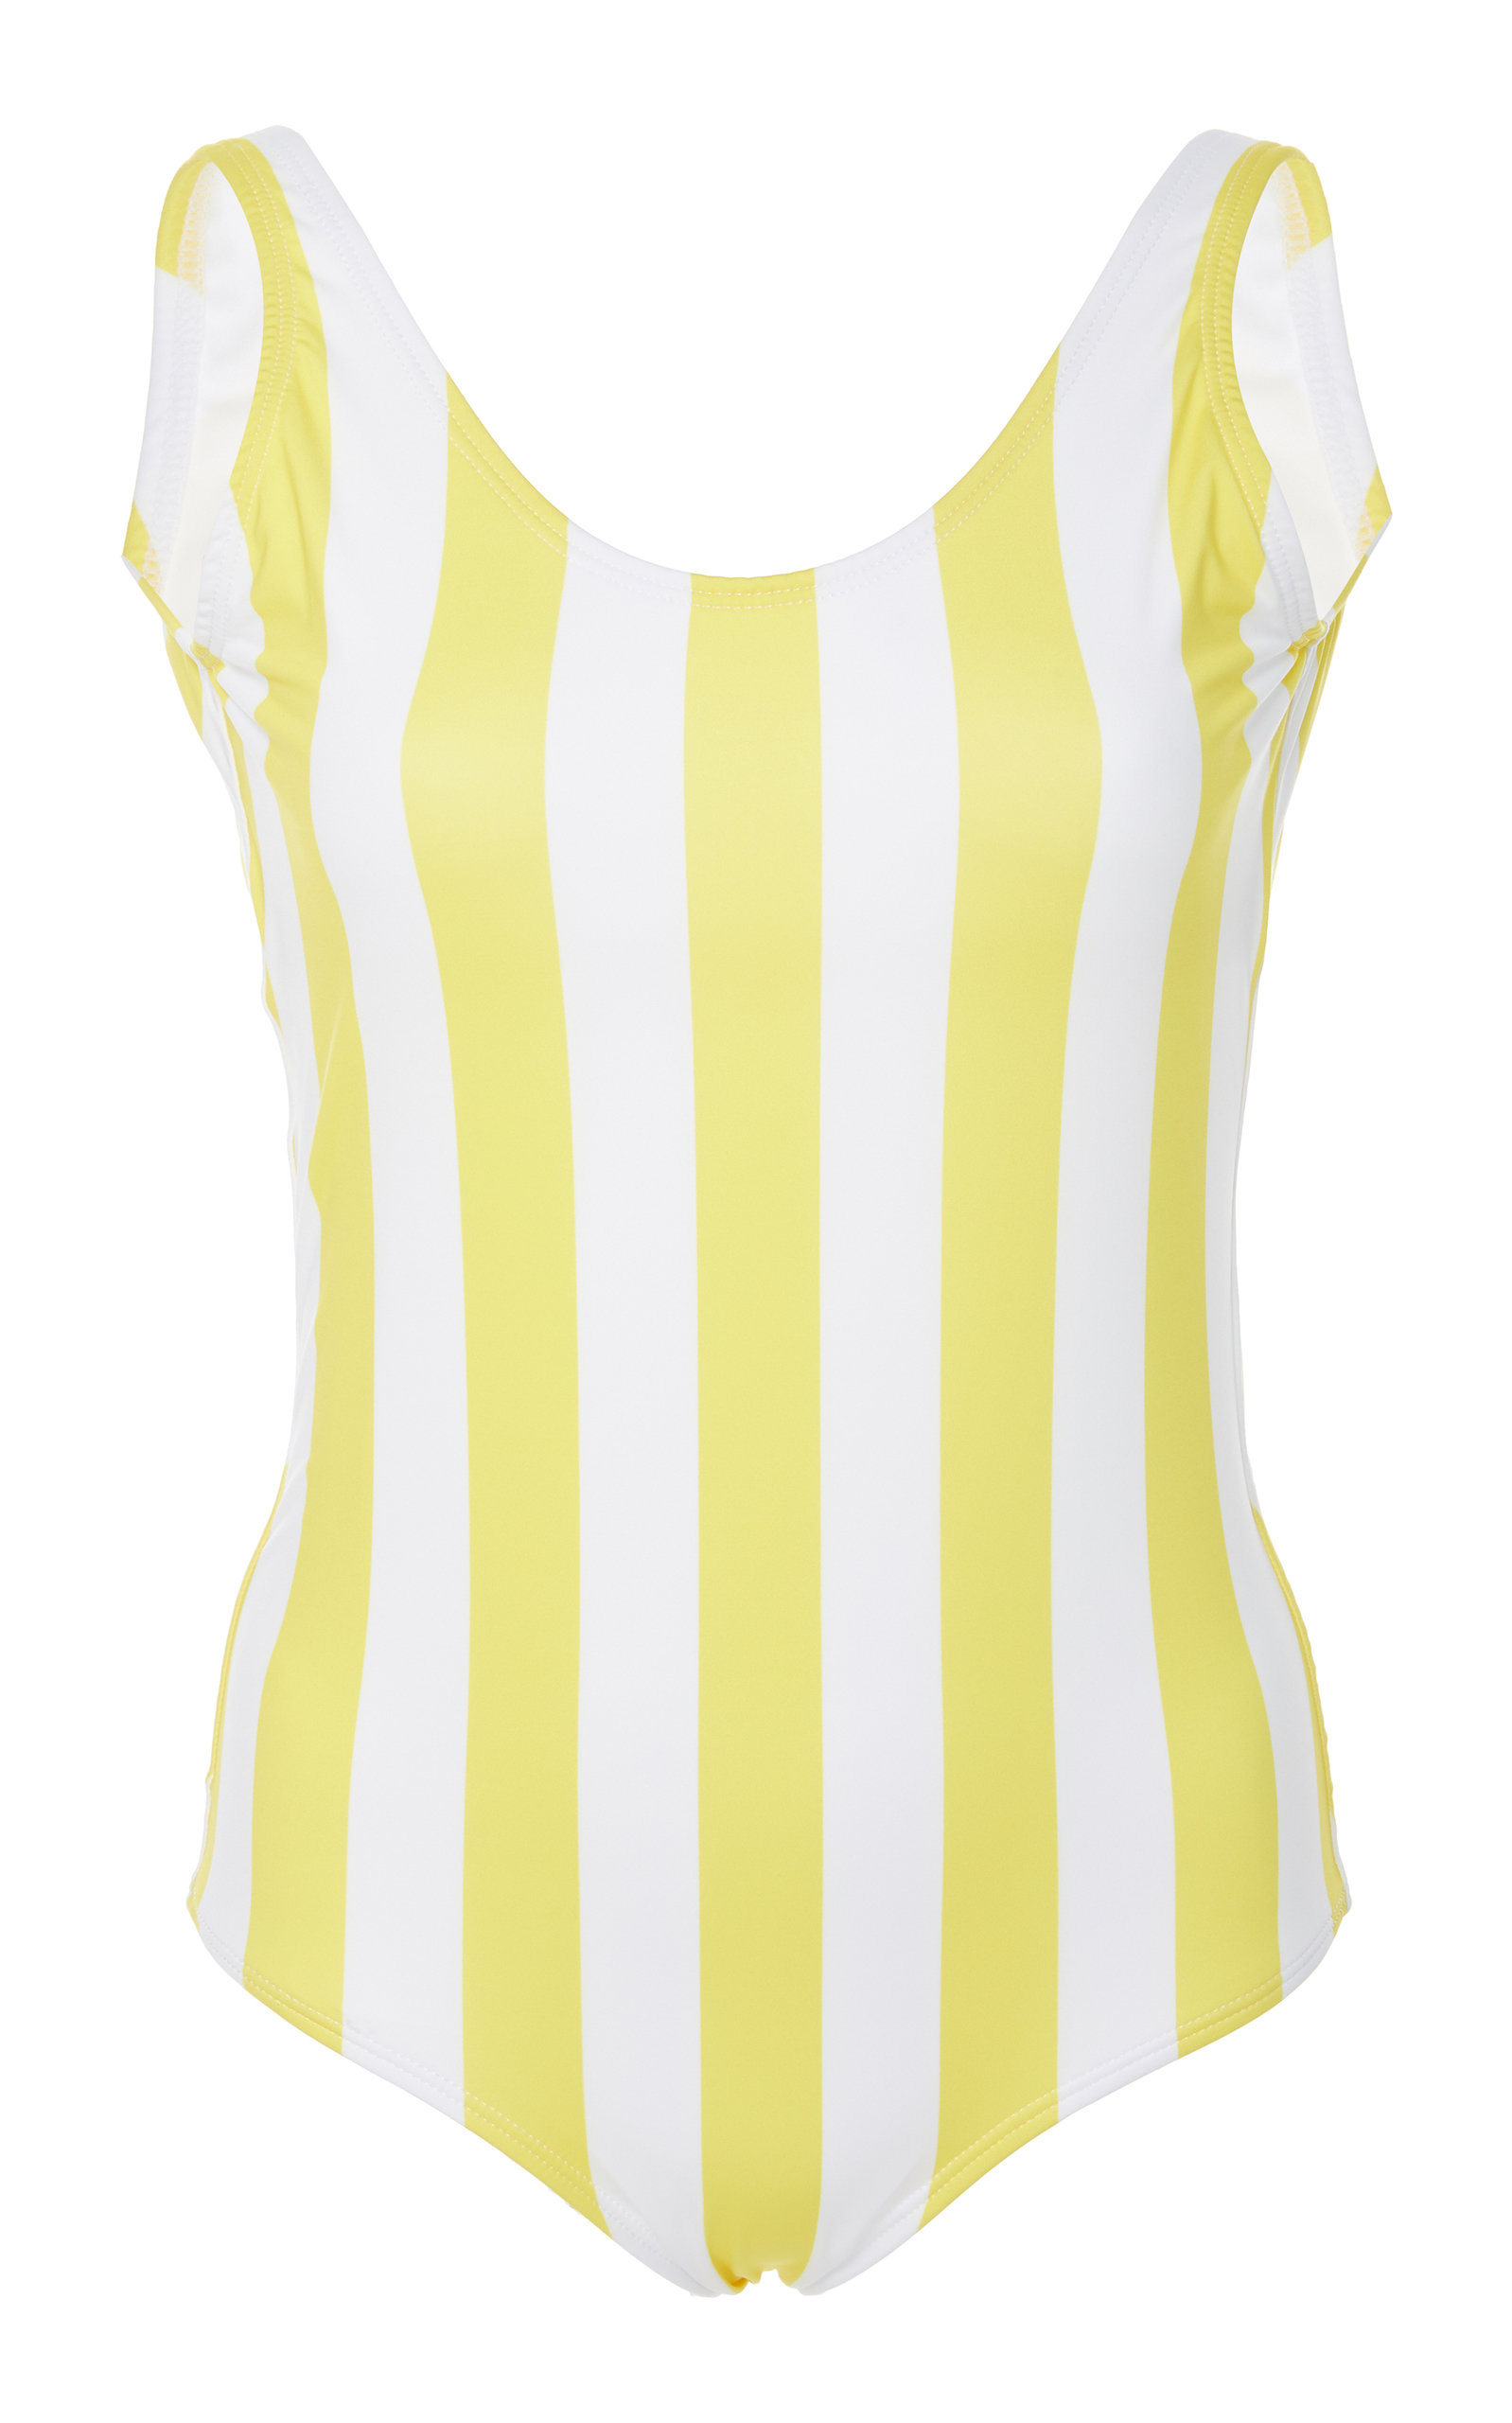 VERDELIMON Trinidad Backless One Piece Swimsuit in Yellow